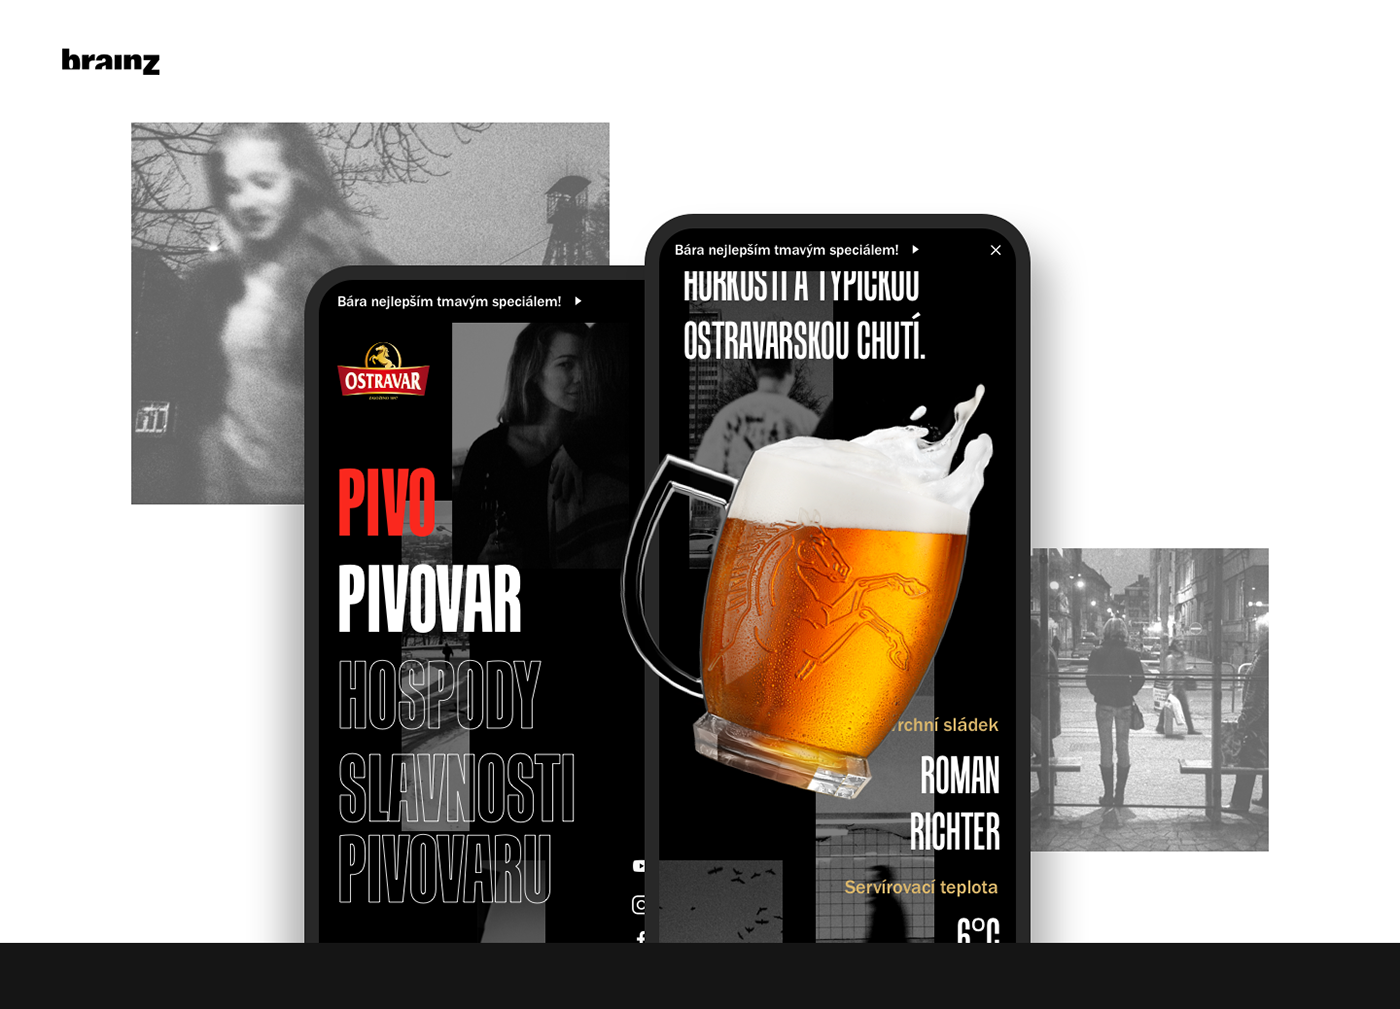 Webdesign UI beer Czech Ostrava Web typography   Photography  product mobile